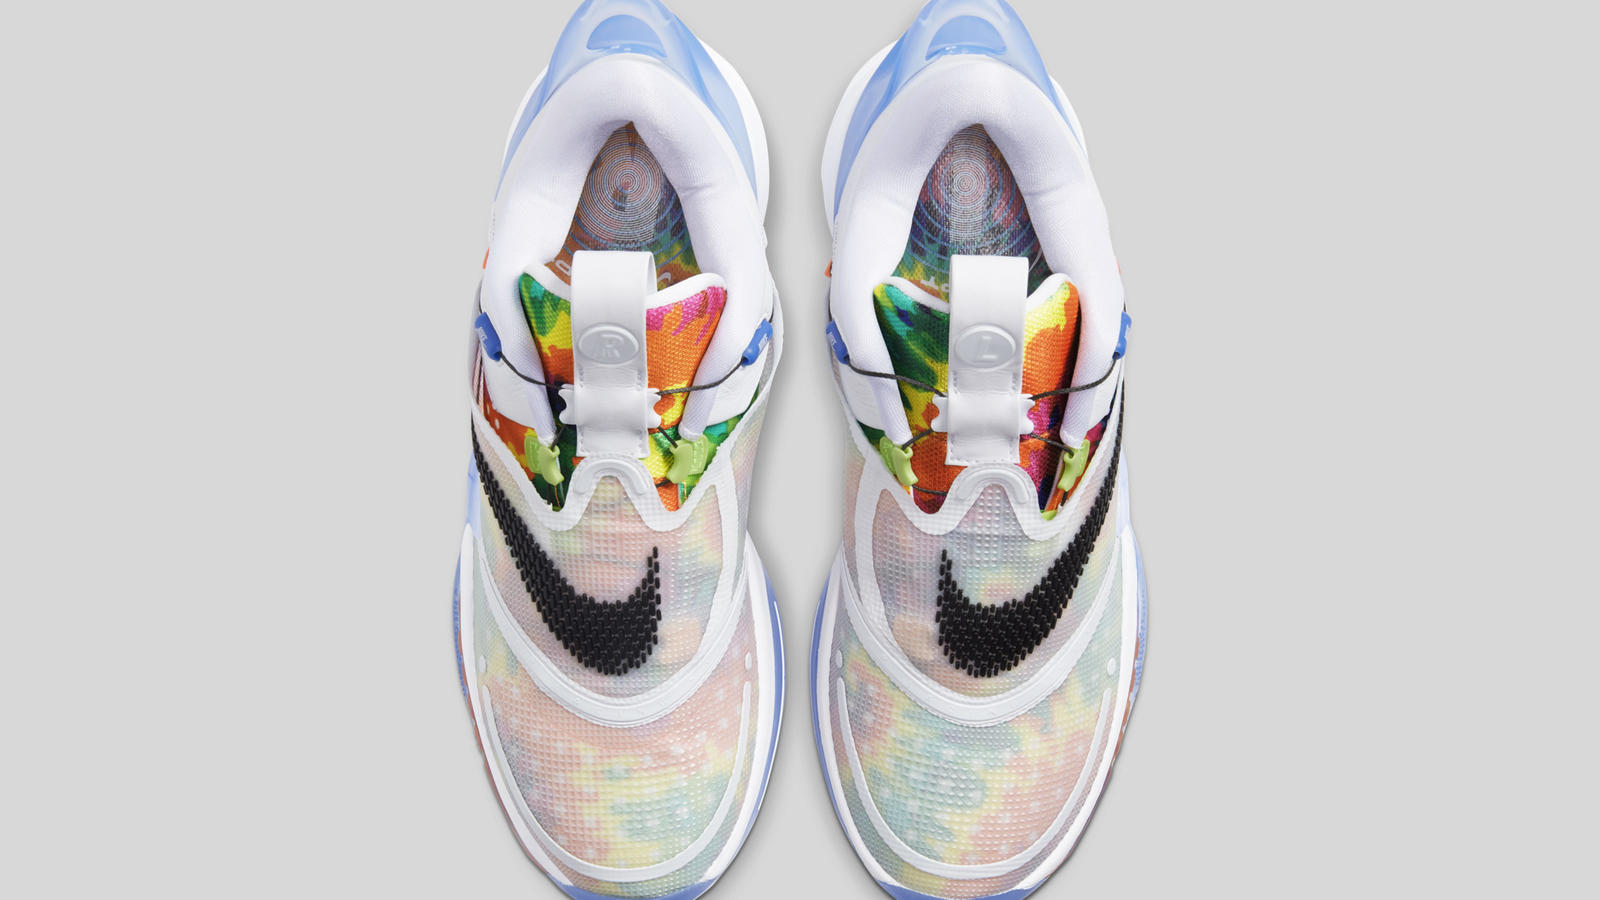 Nike Adapt Bb 2 0 Tie Dye Official Images And Release Date Nike News